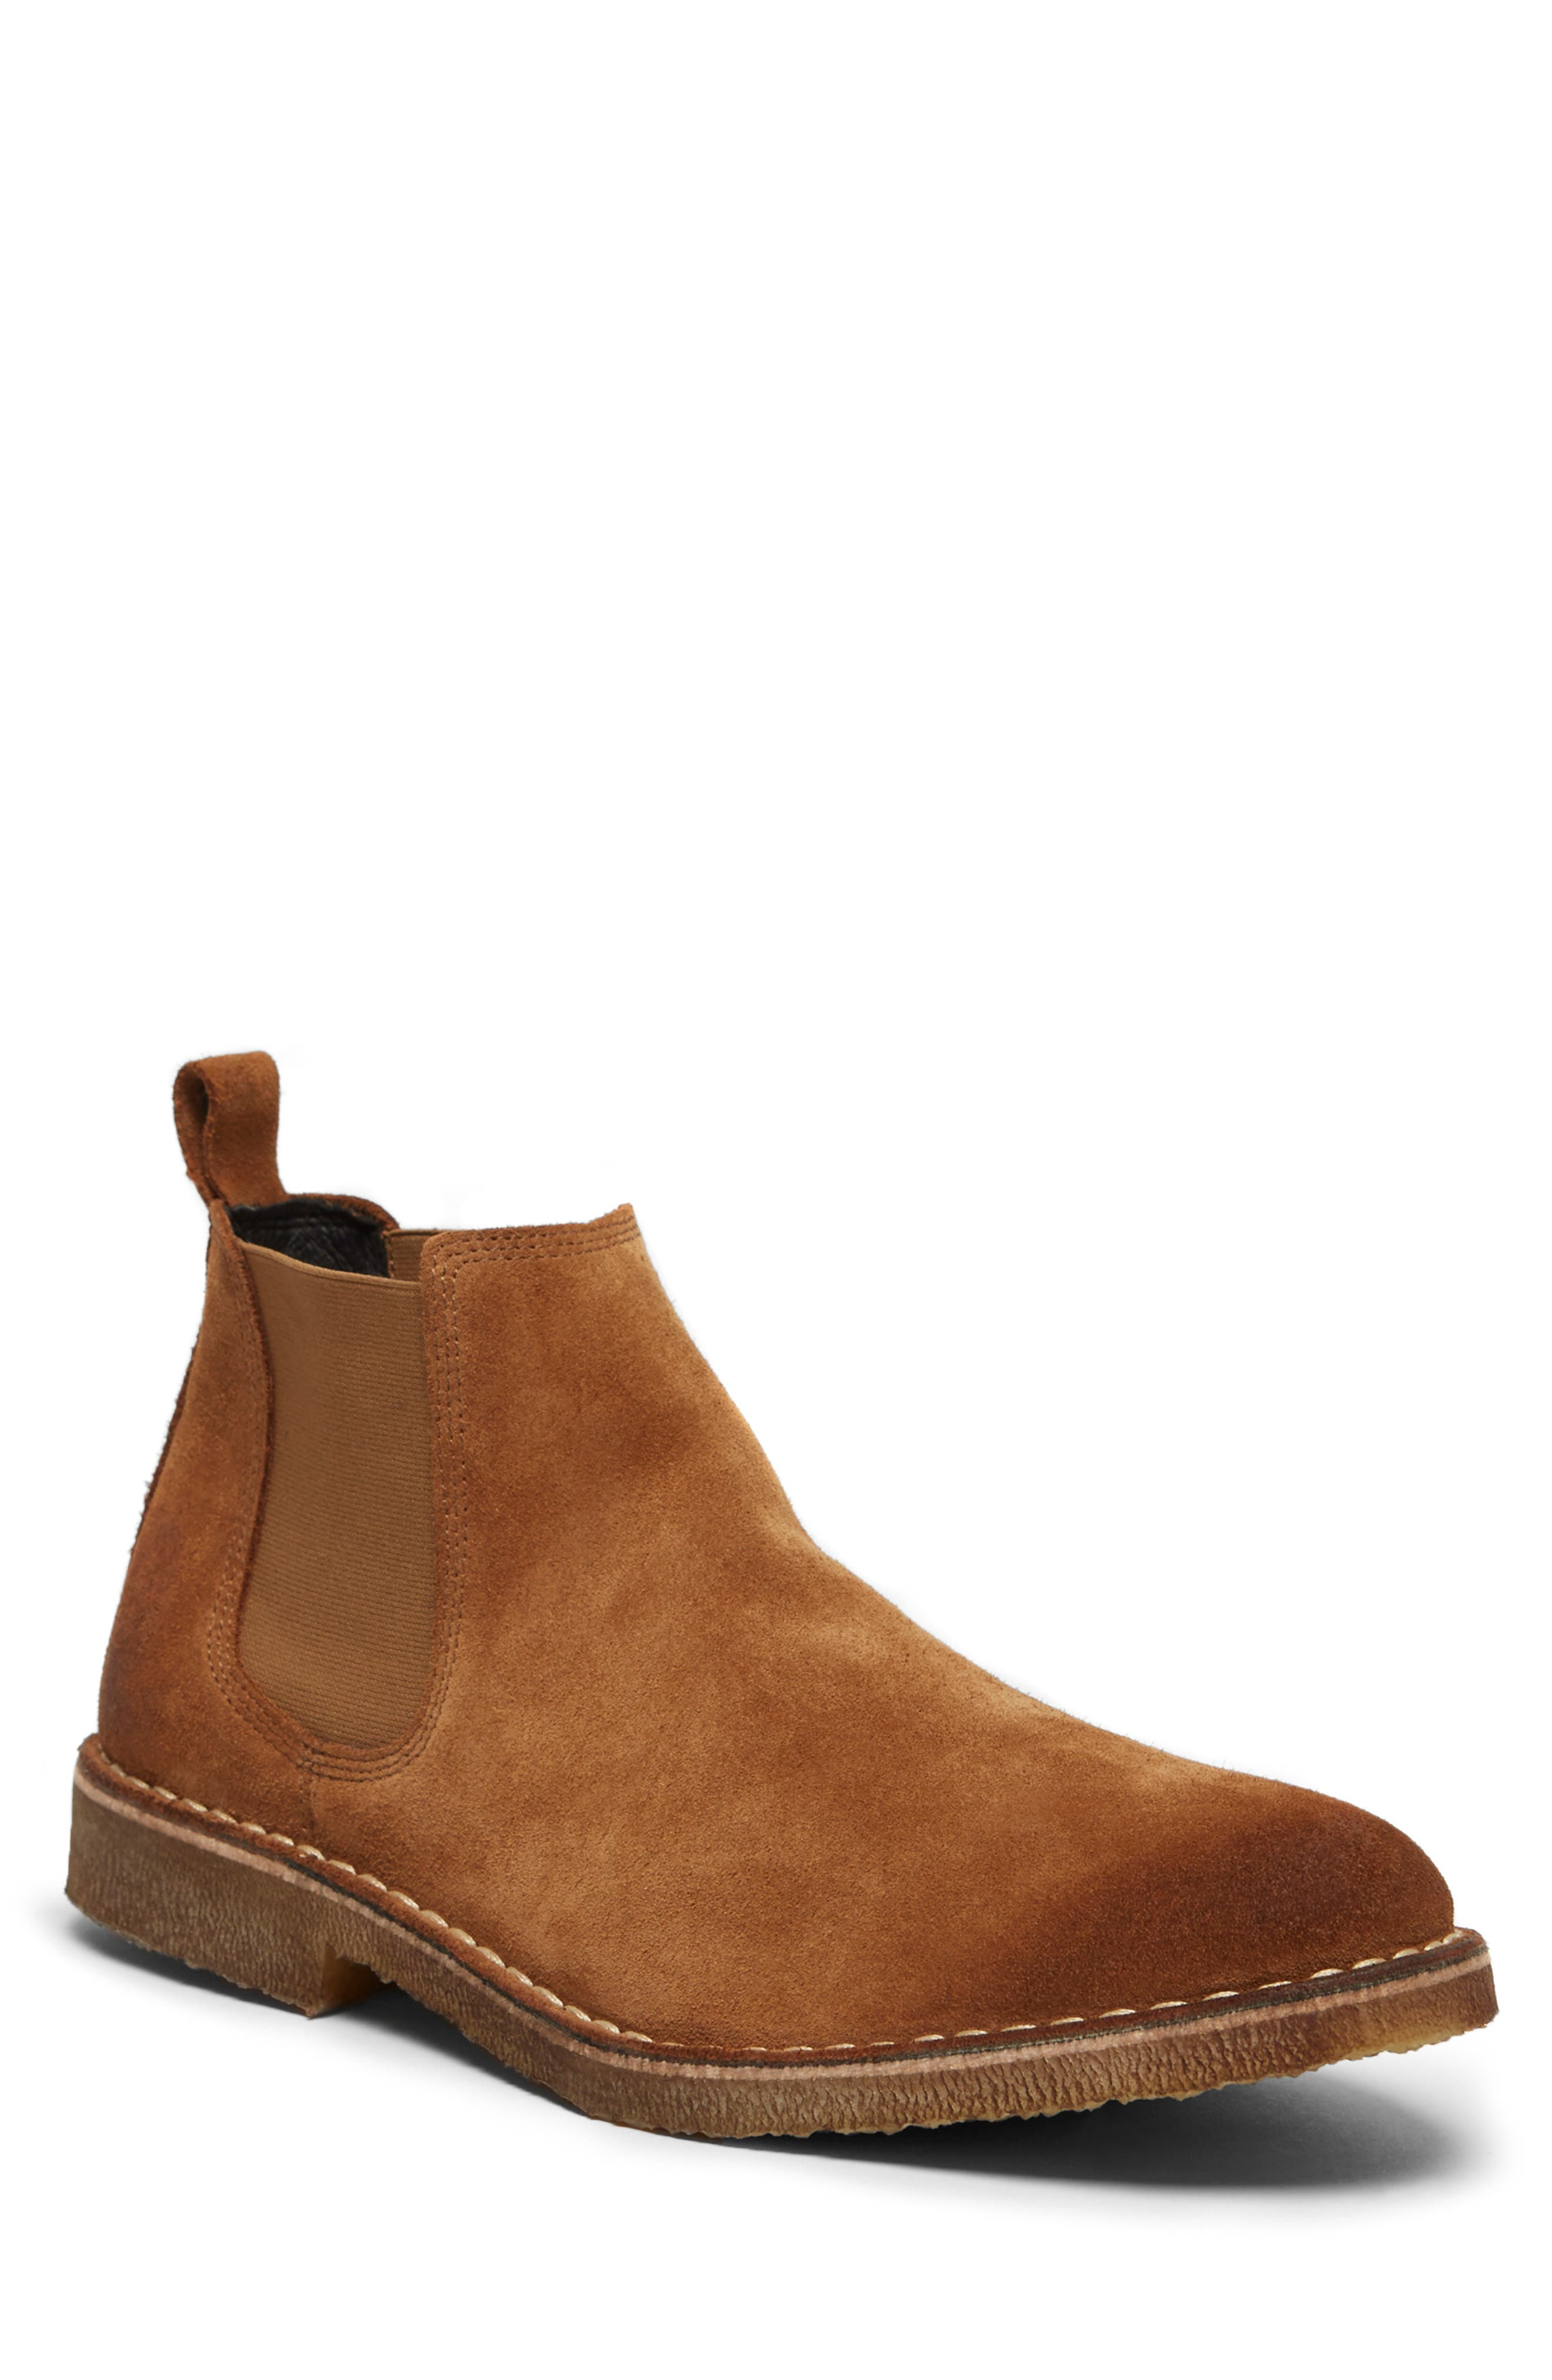 KENNETH COLE NEW YORK Hewitt Chelsea Boot, Main, color, RUST SUEDE